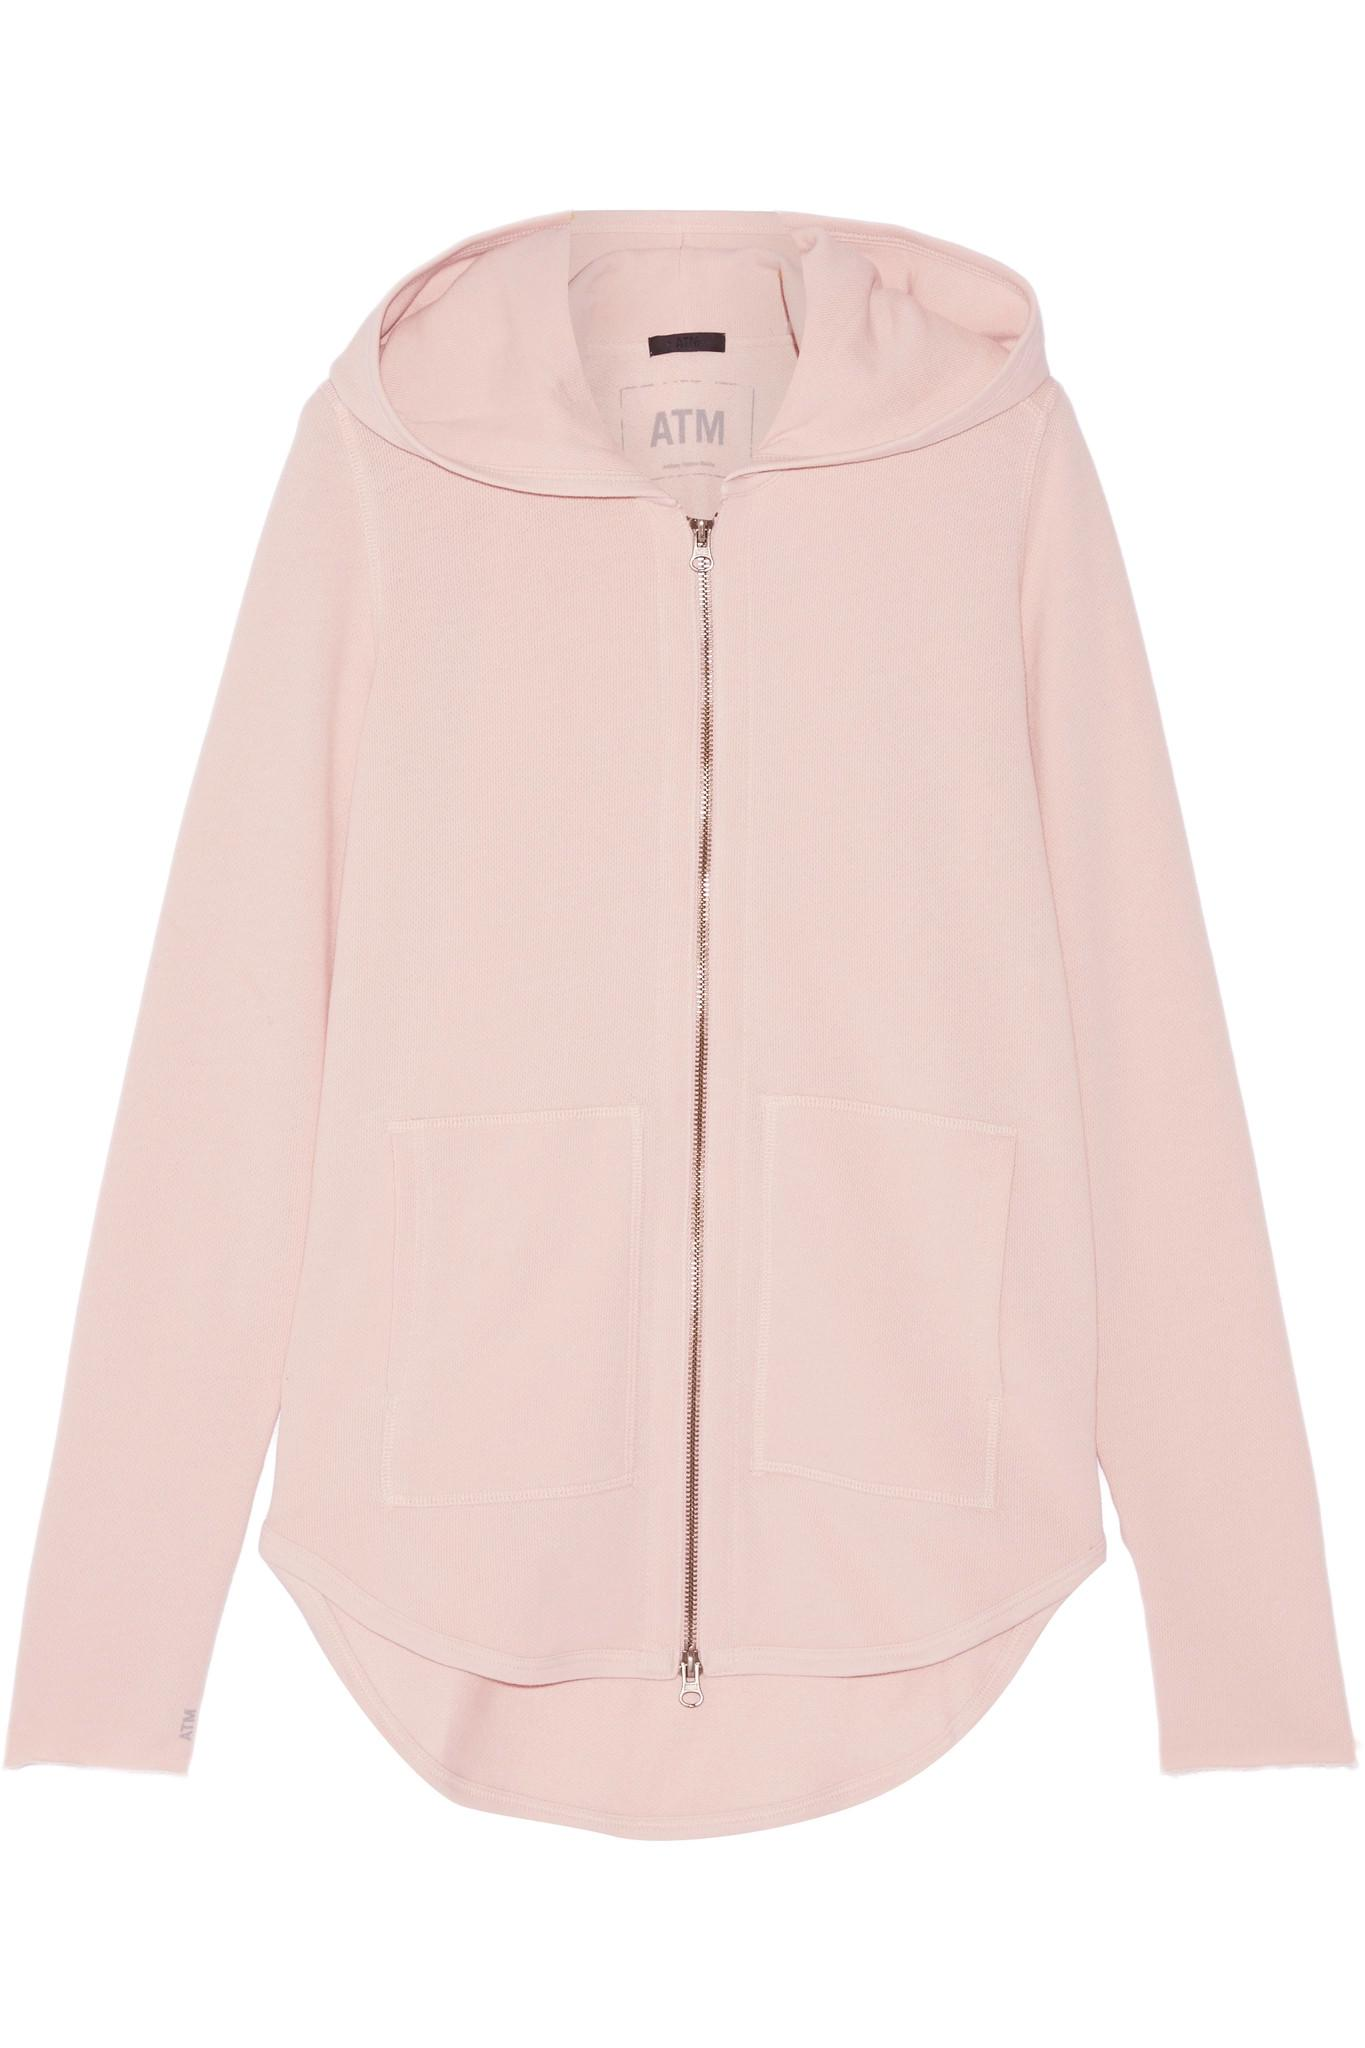 Anthropologie Founder Atm French Cotton Blend Terry Hooded Top In Pink Lyst